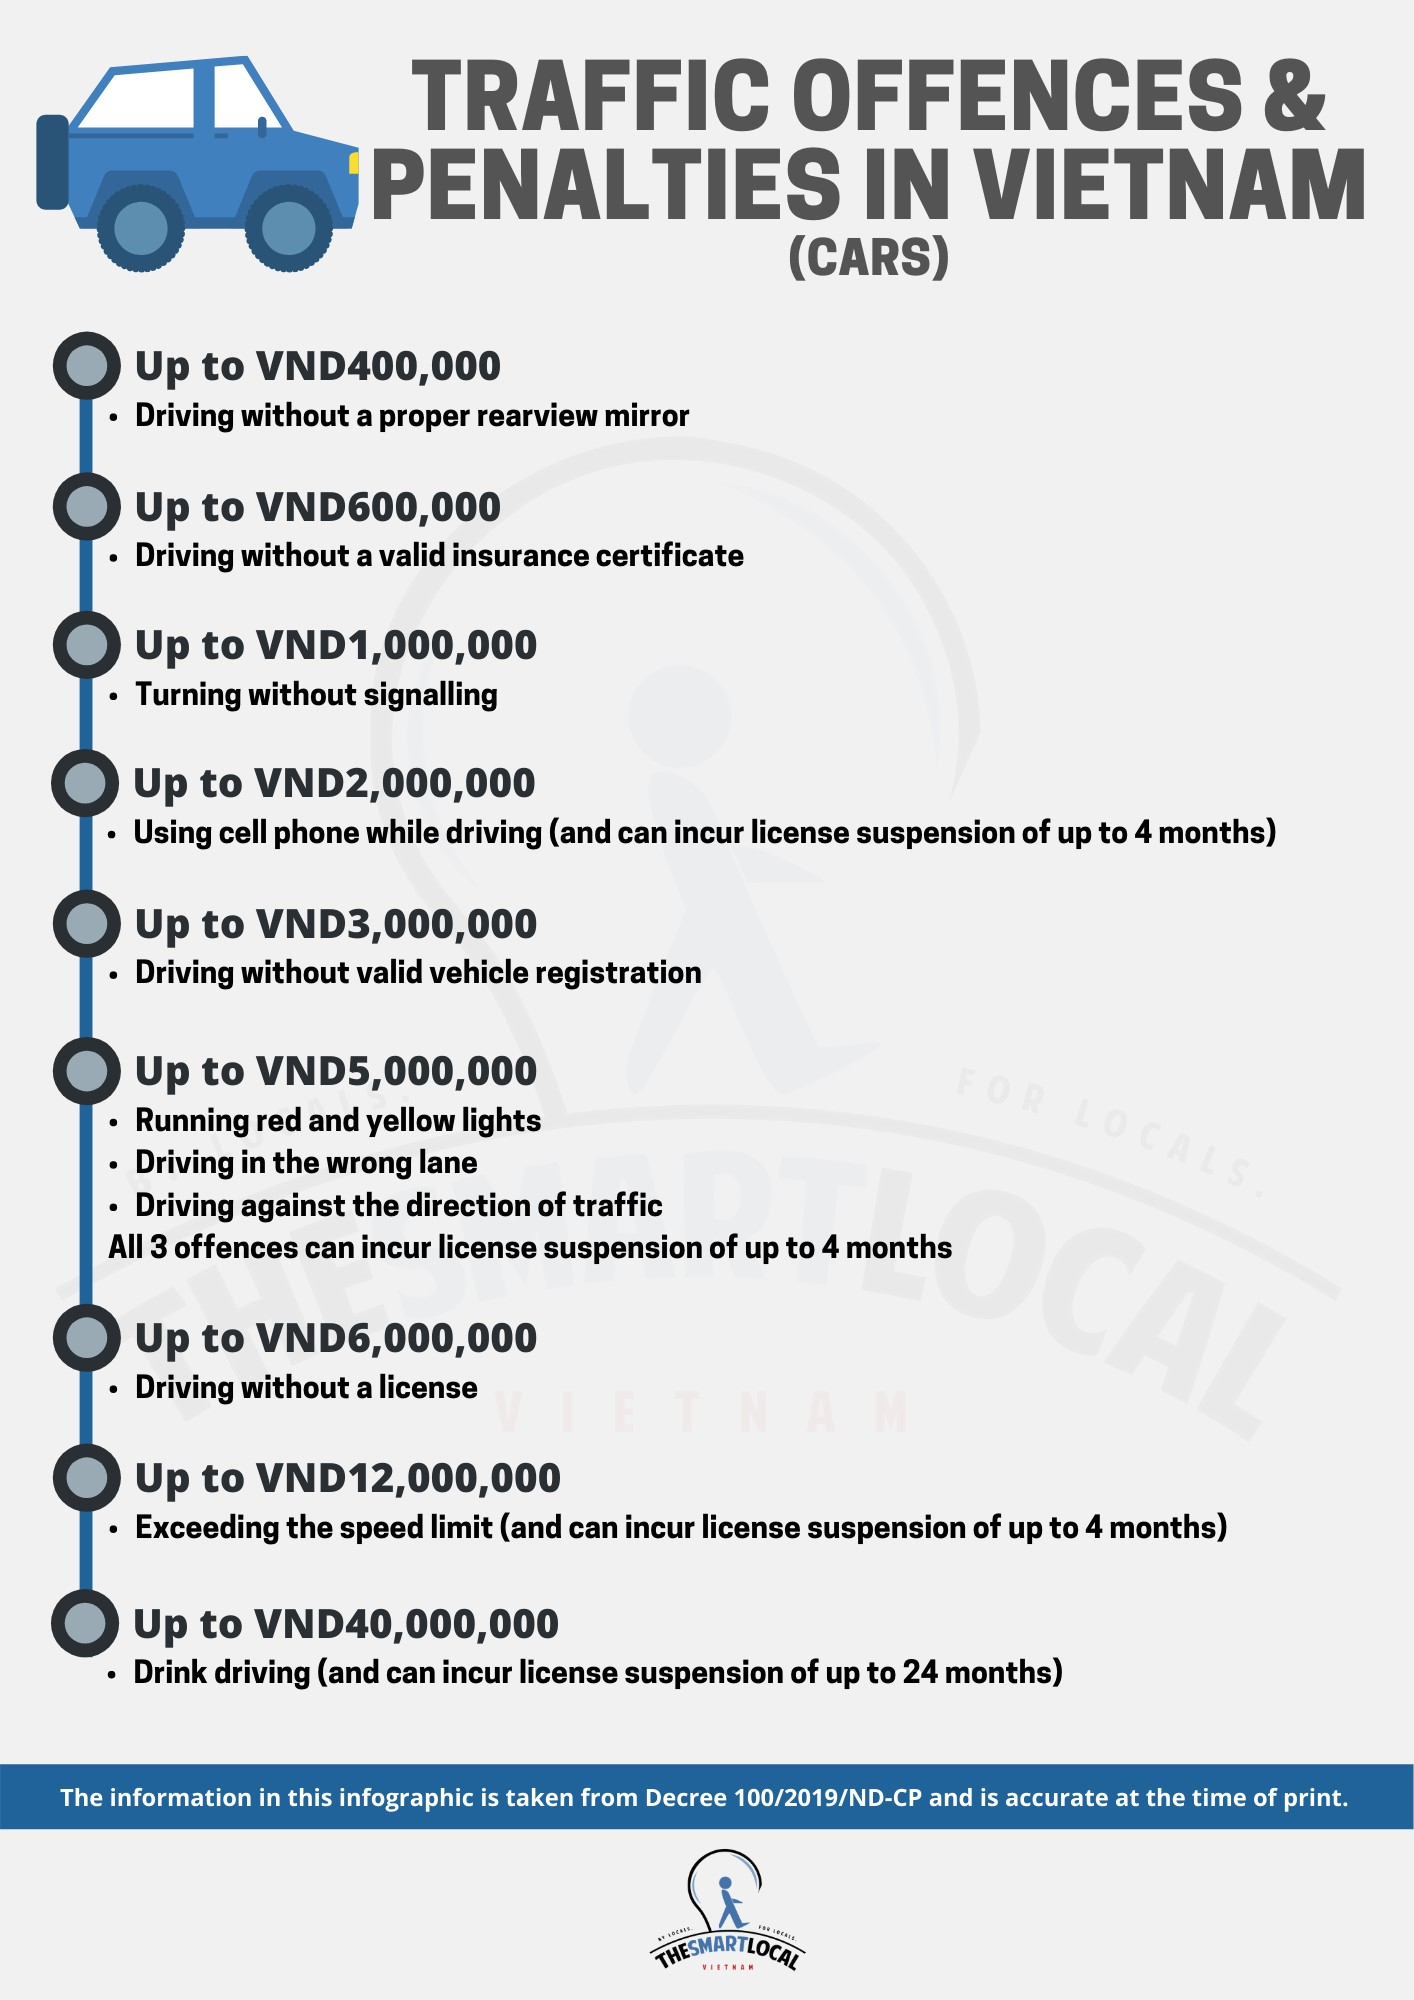 Vietnam traffic rules_offenses and penalties for car drivers